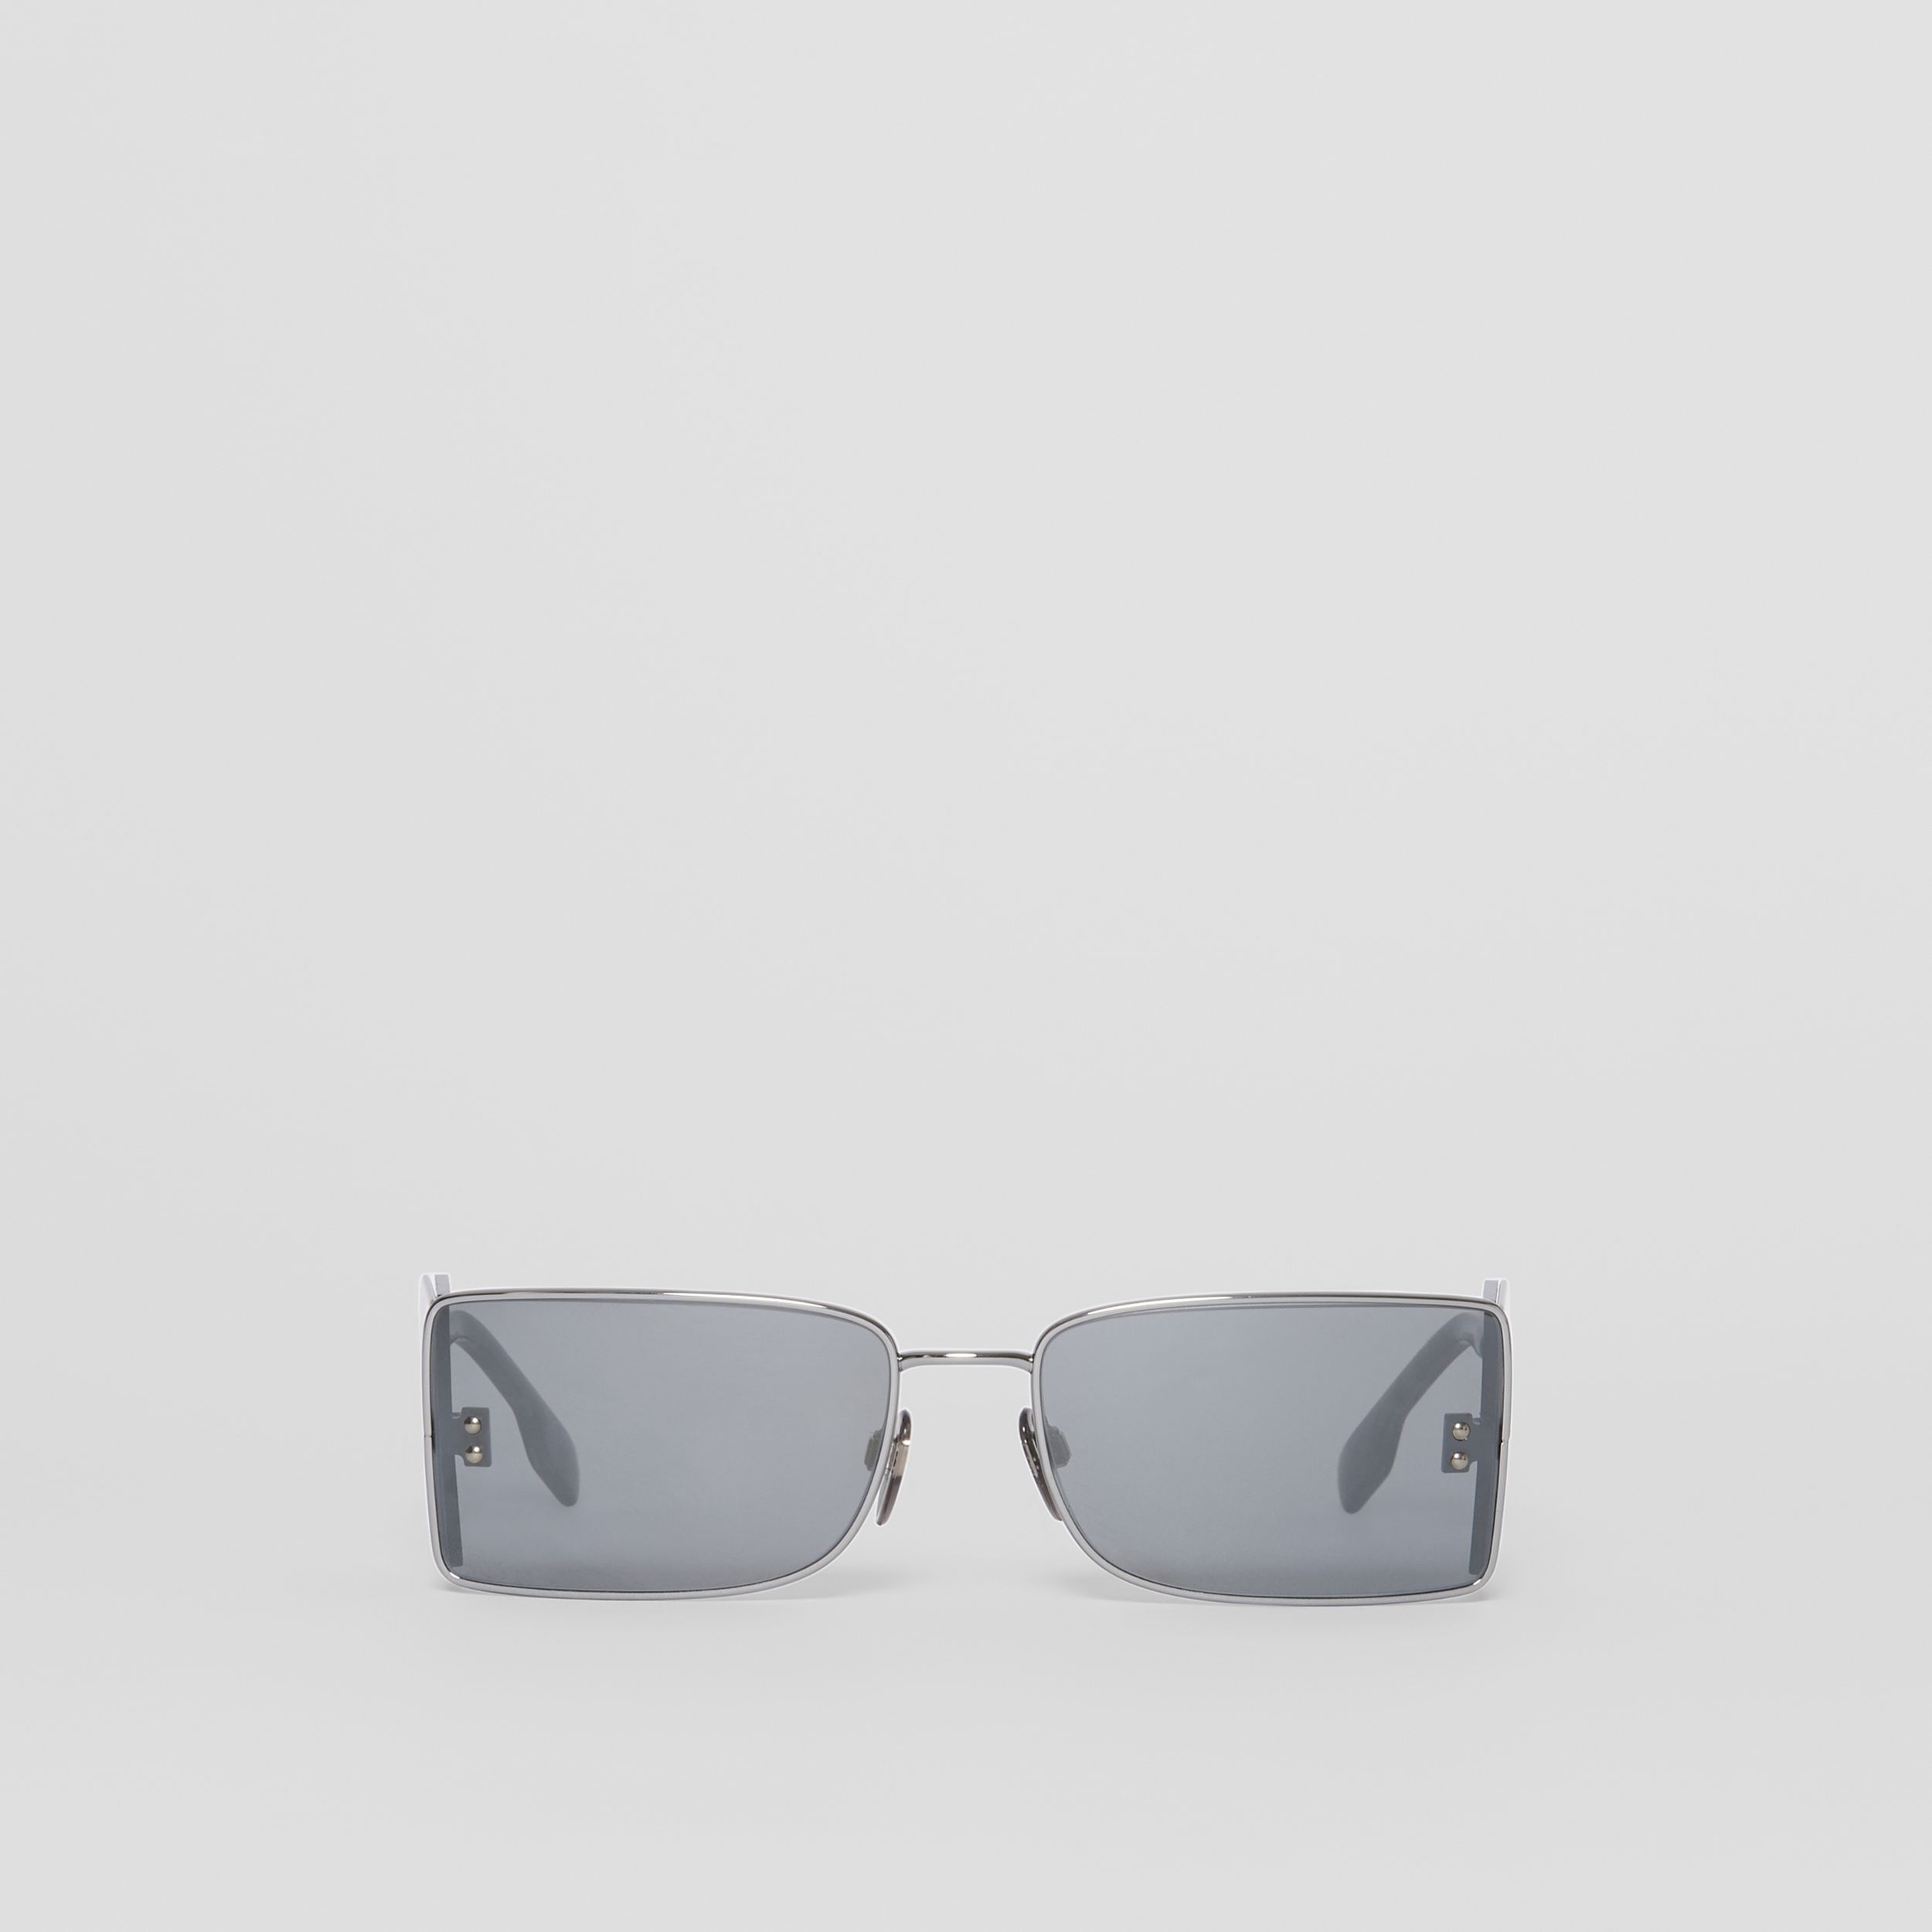 'B' Lens Detail Rectangular Frame Sunglasses in Gunmetal Grey | Burberry United States - 1